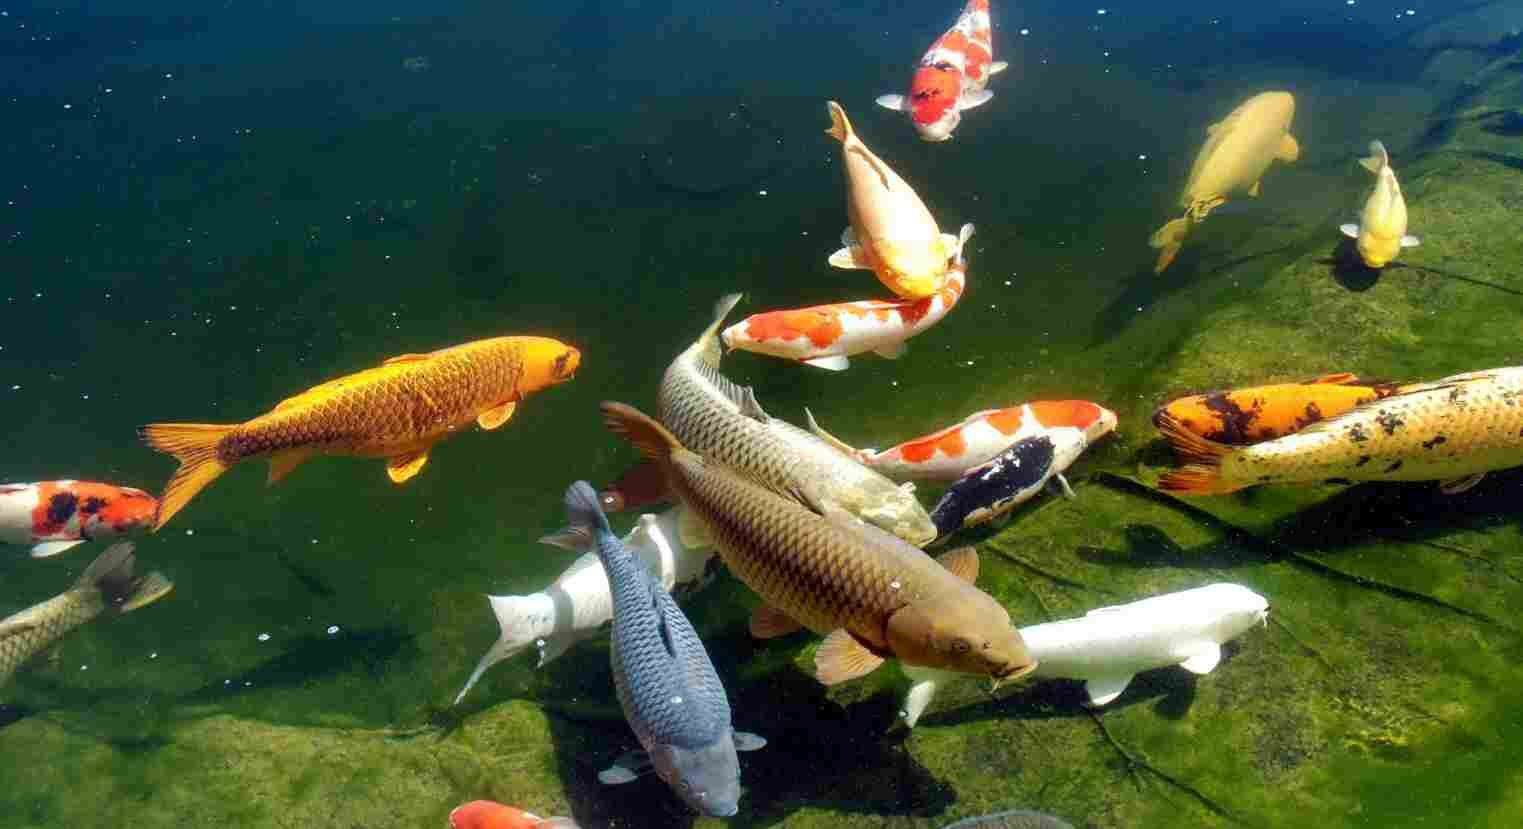 Koi fish pond wallpaper hd koi fish in the pond koi for Freshwater koi fish